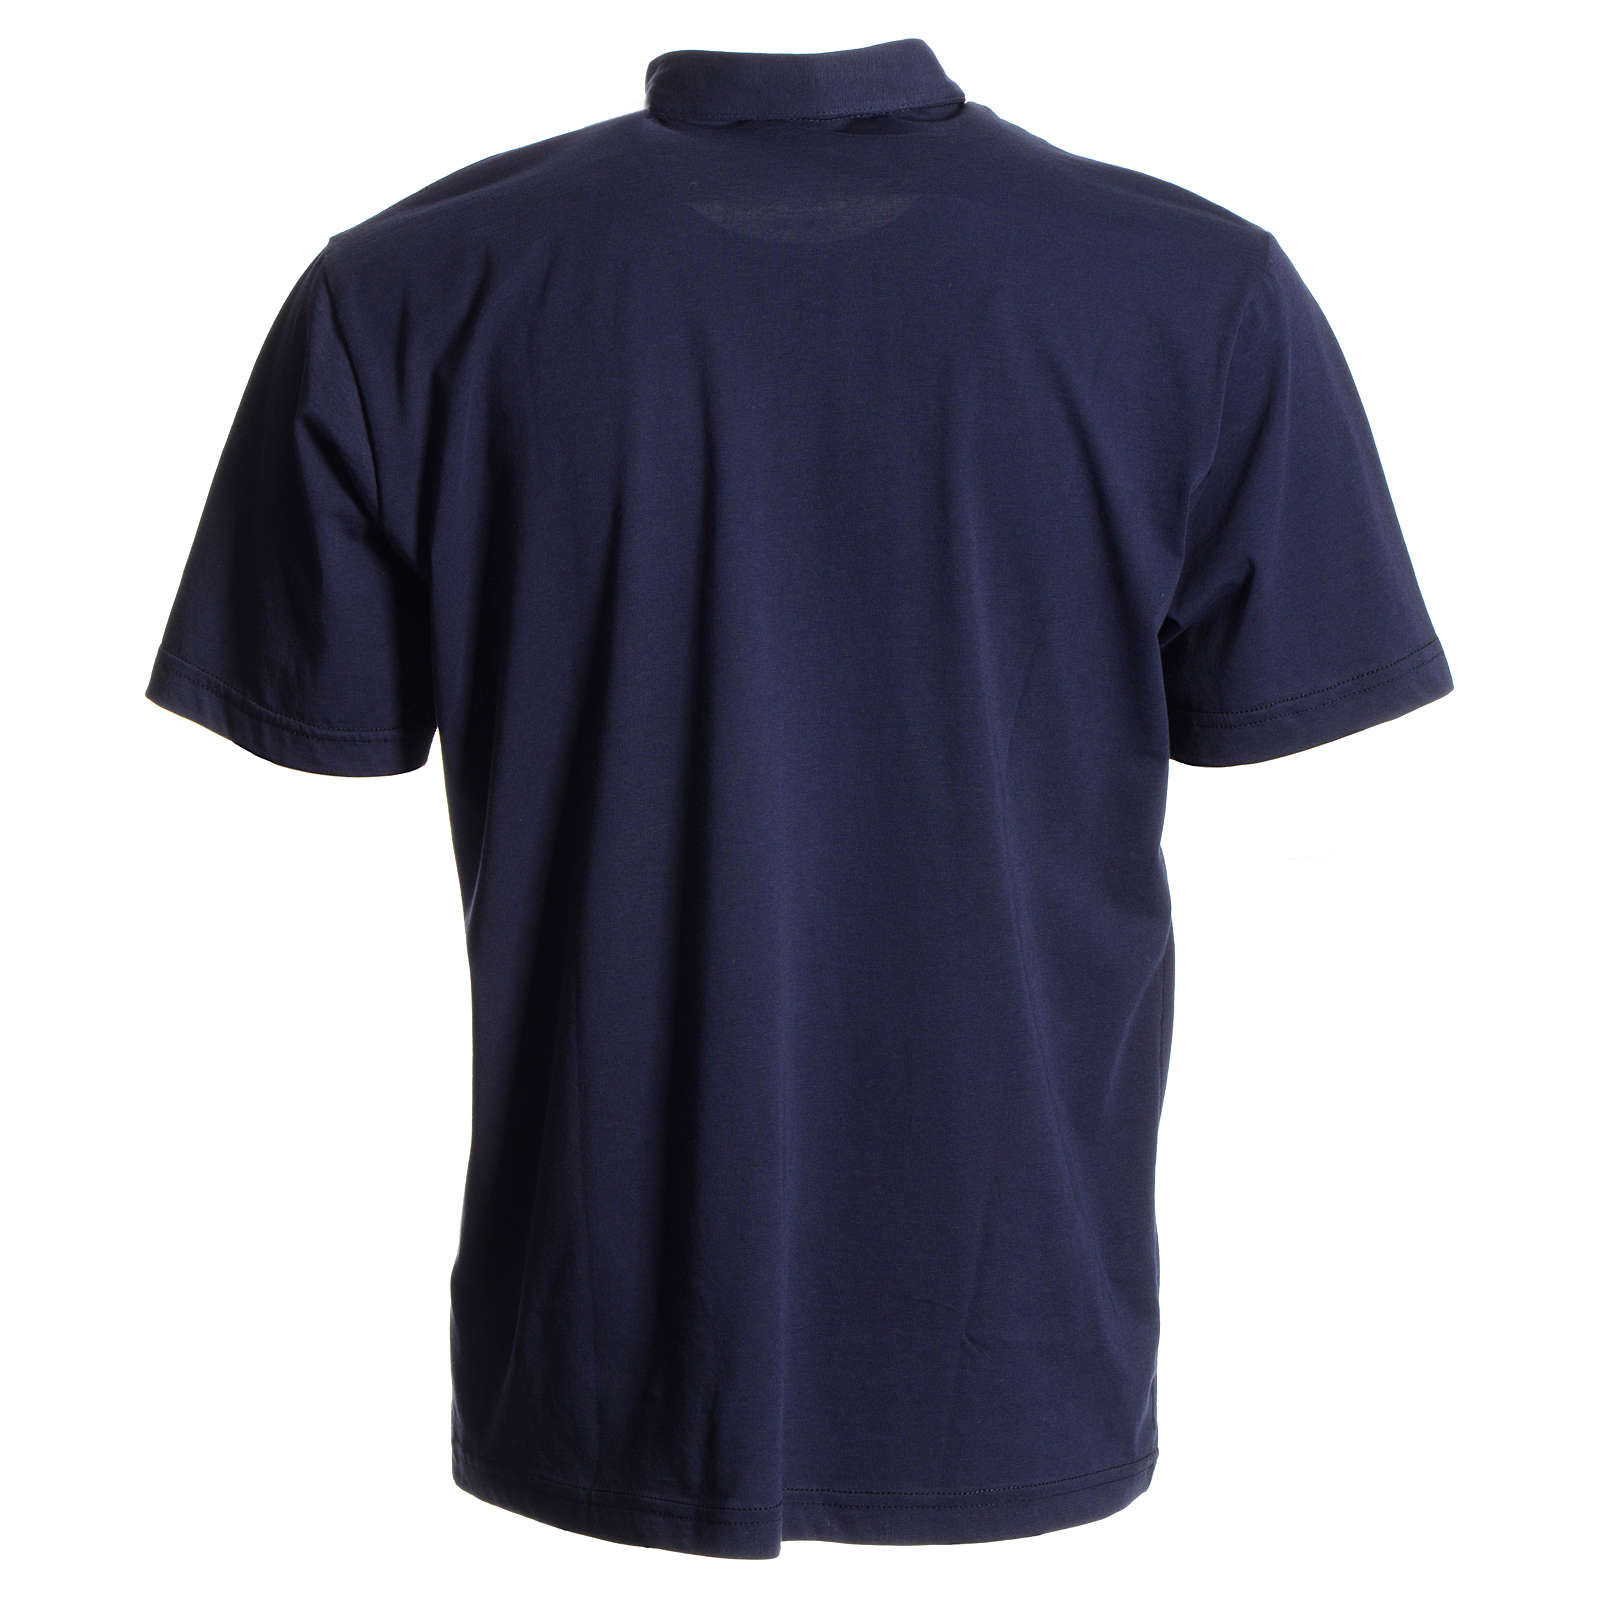 Catholic Priest polo shirt in navy blue, 100% cotton 4